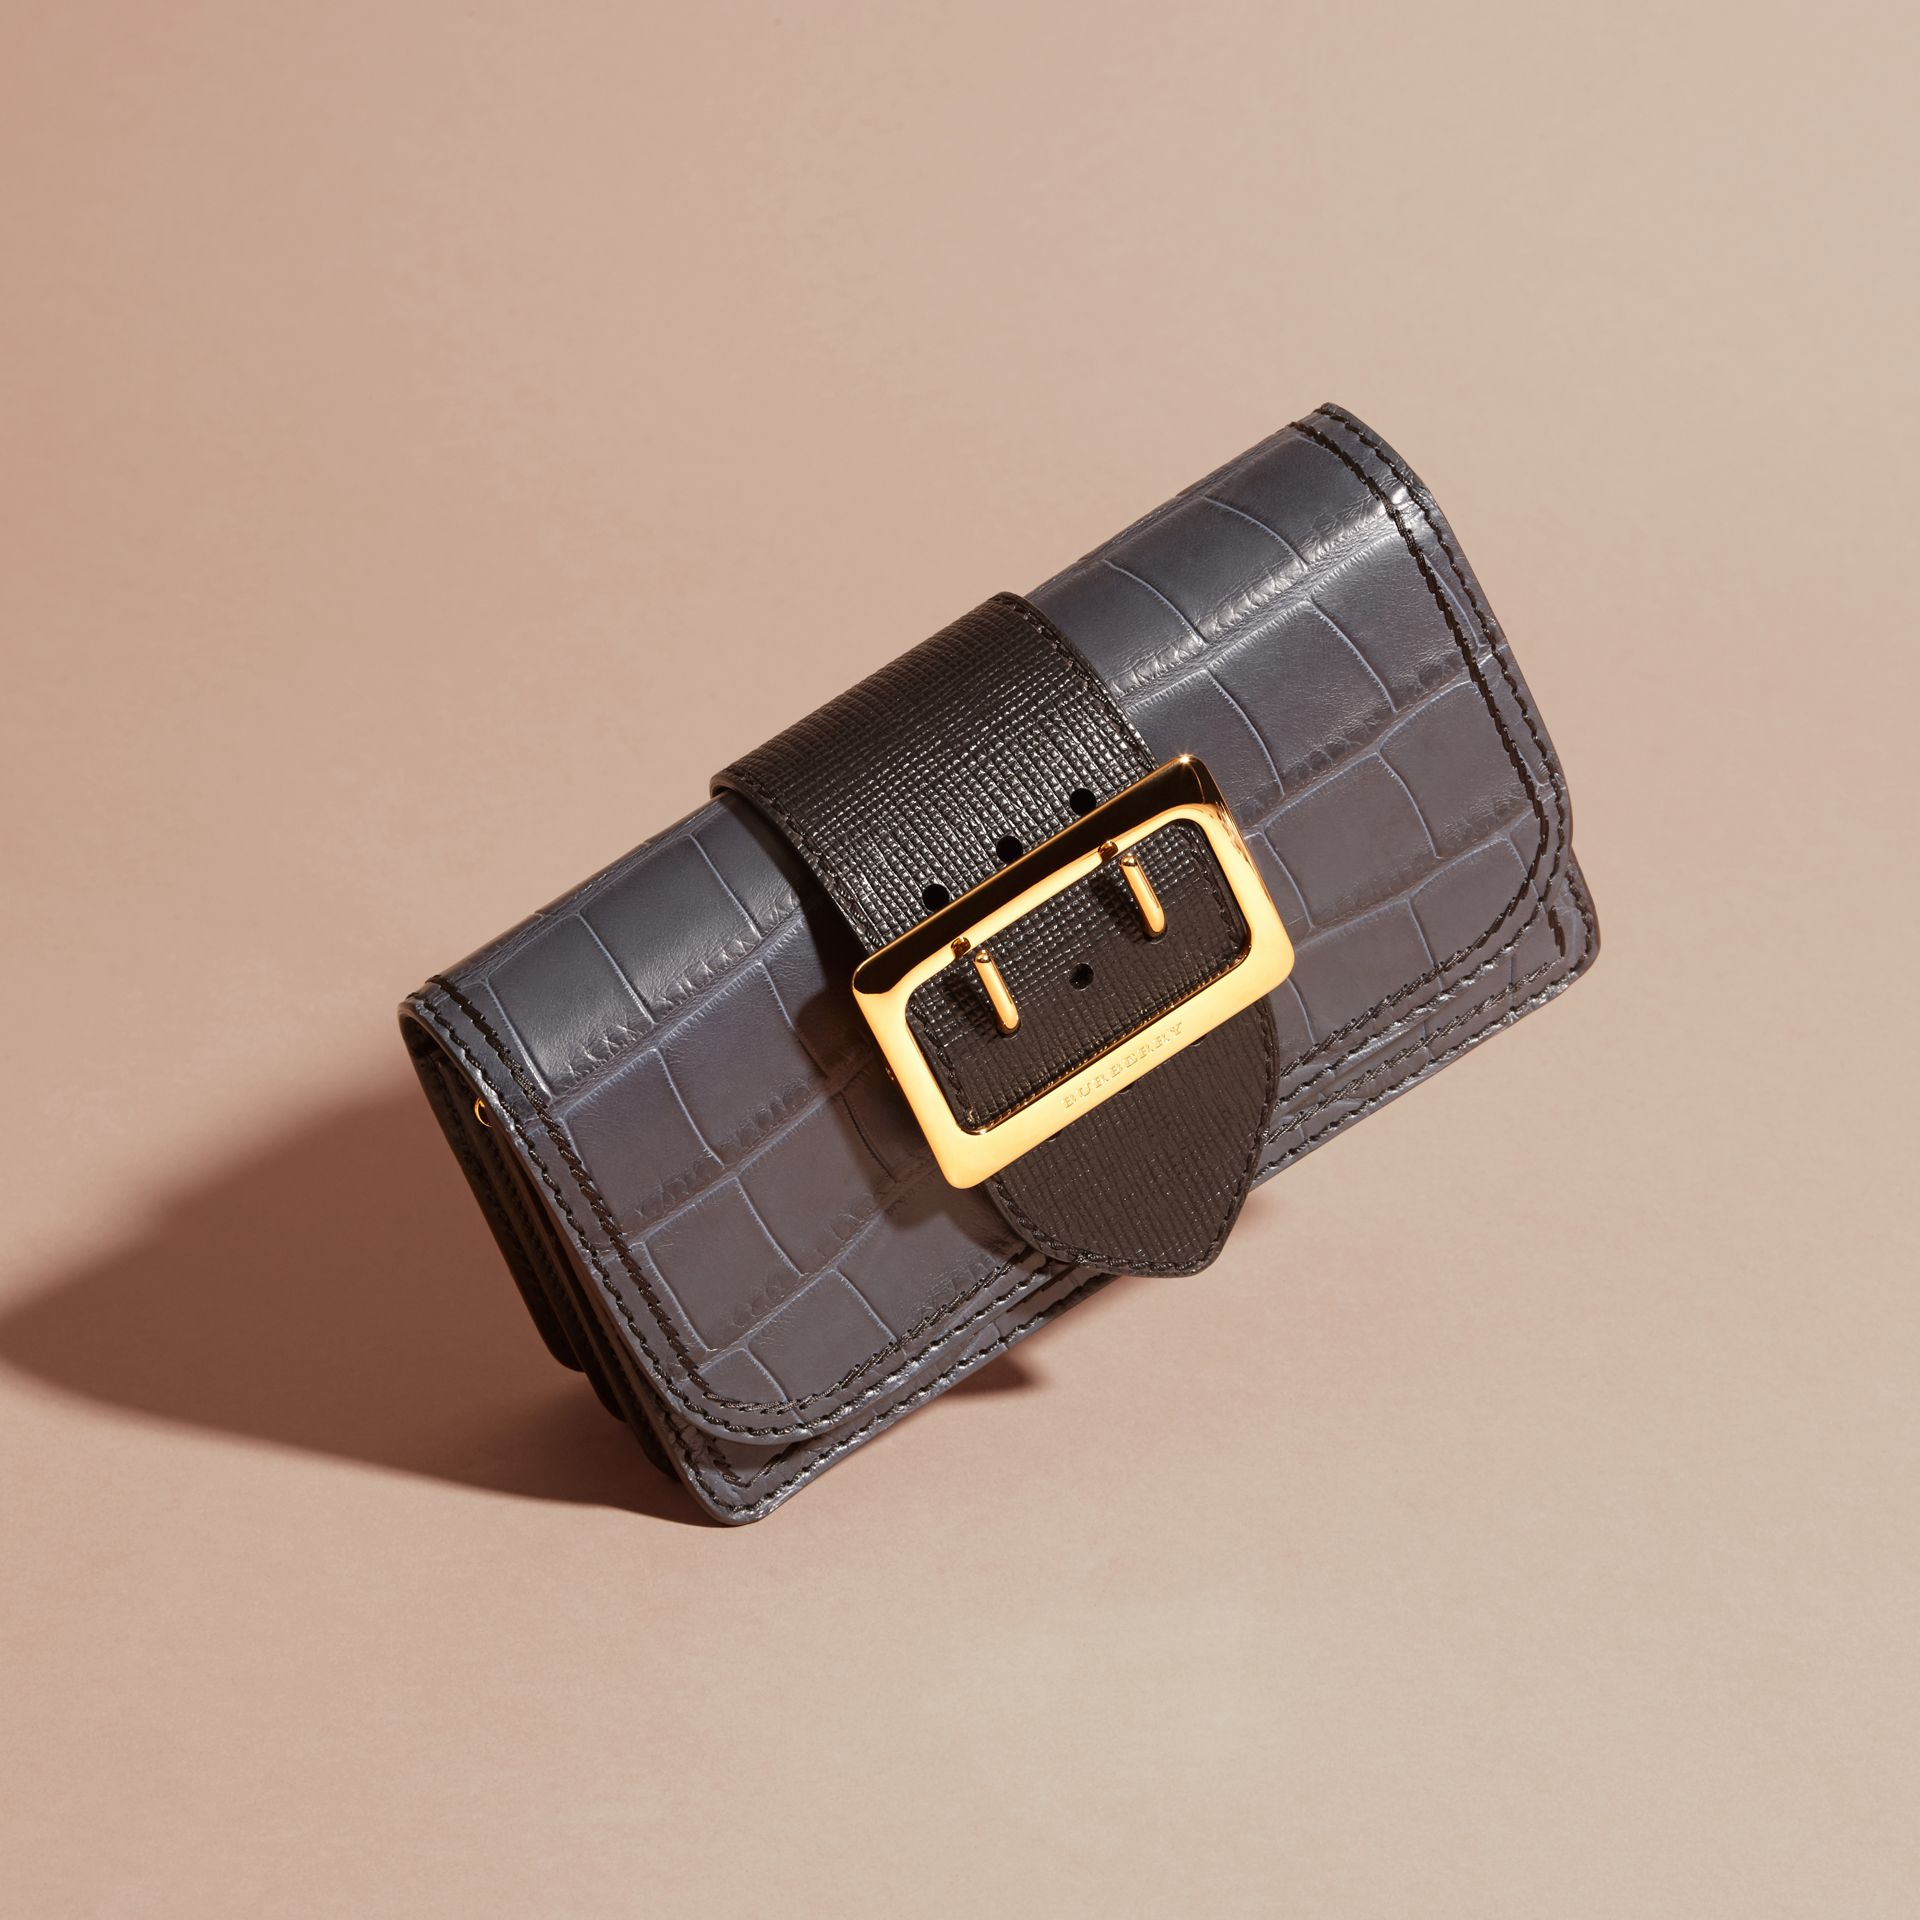 The Small Buckle Bag aus Alligatorleder und Leder (Marineblau/schwarz) - Damen | Burberry - Galerie-Bild 8